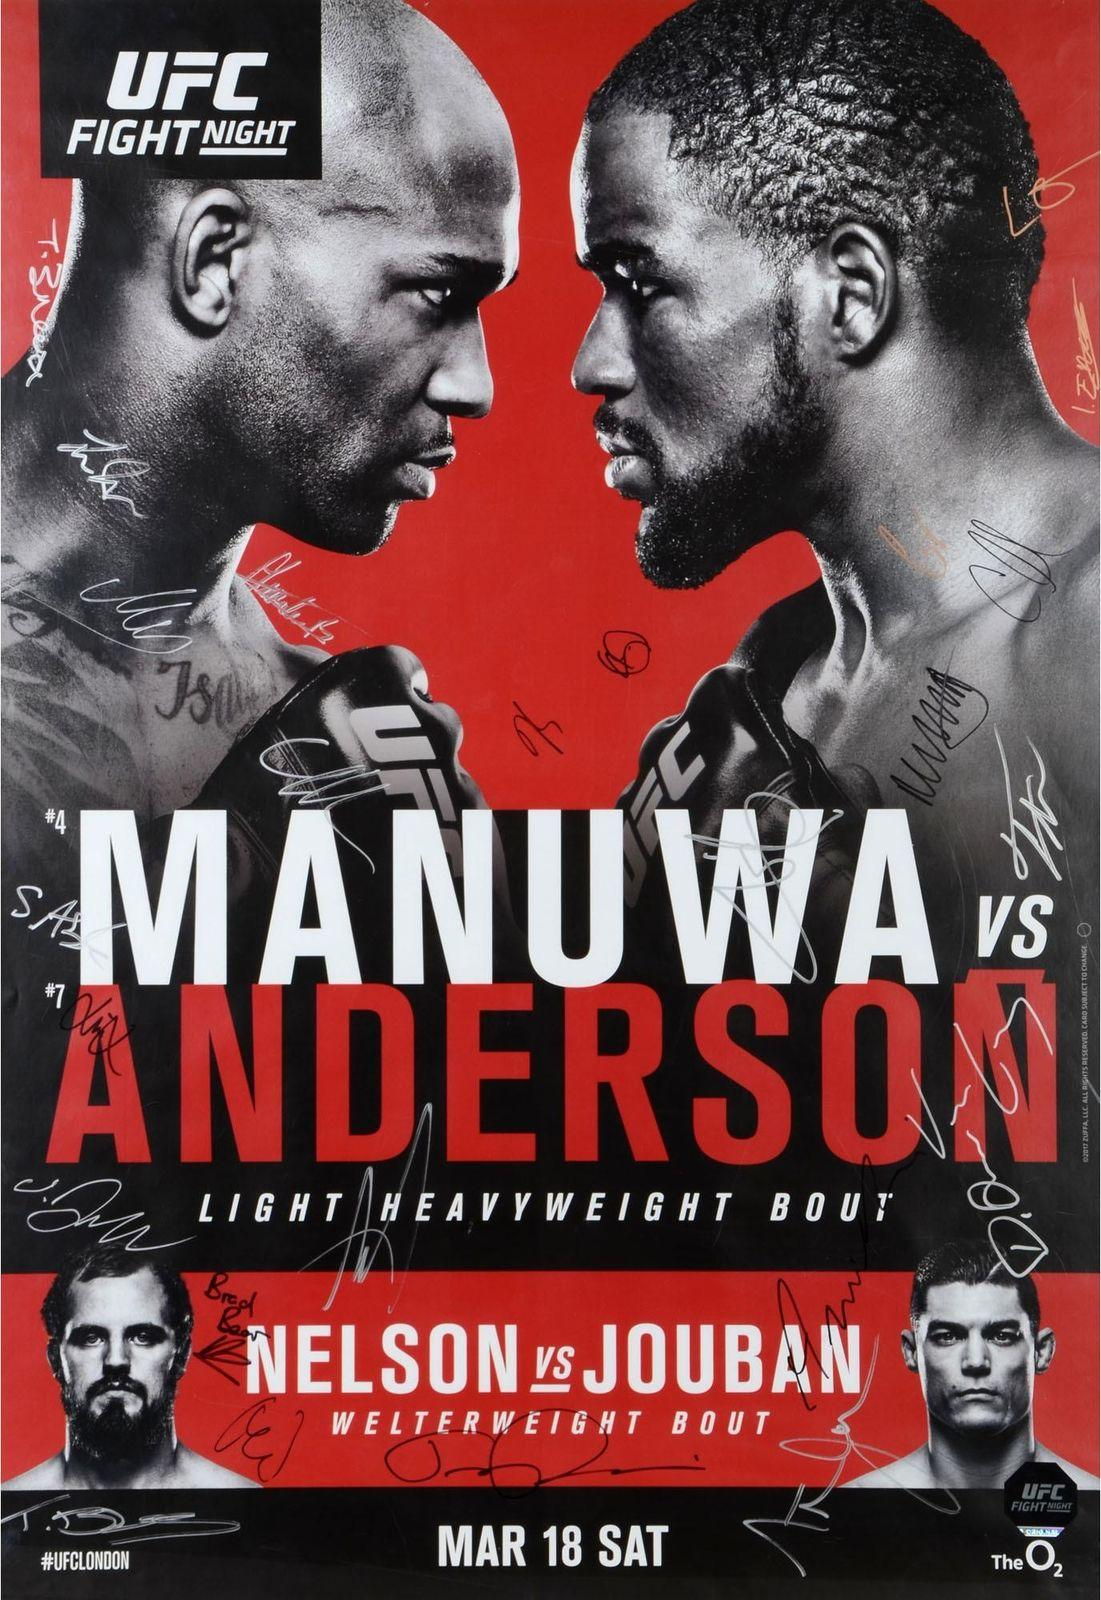 Ufc Fight Night 107 Manuwa Vs Anderson Decor Art Silk Poster 24x36inch 24x43inch Stickers On Your Wall Stickers To Decorate Walls From Wangzhi Hao8 12 05 Dhgate Com